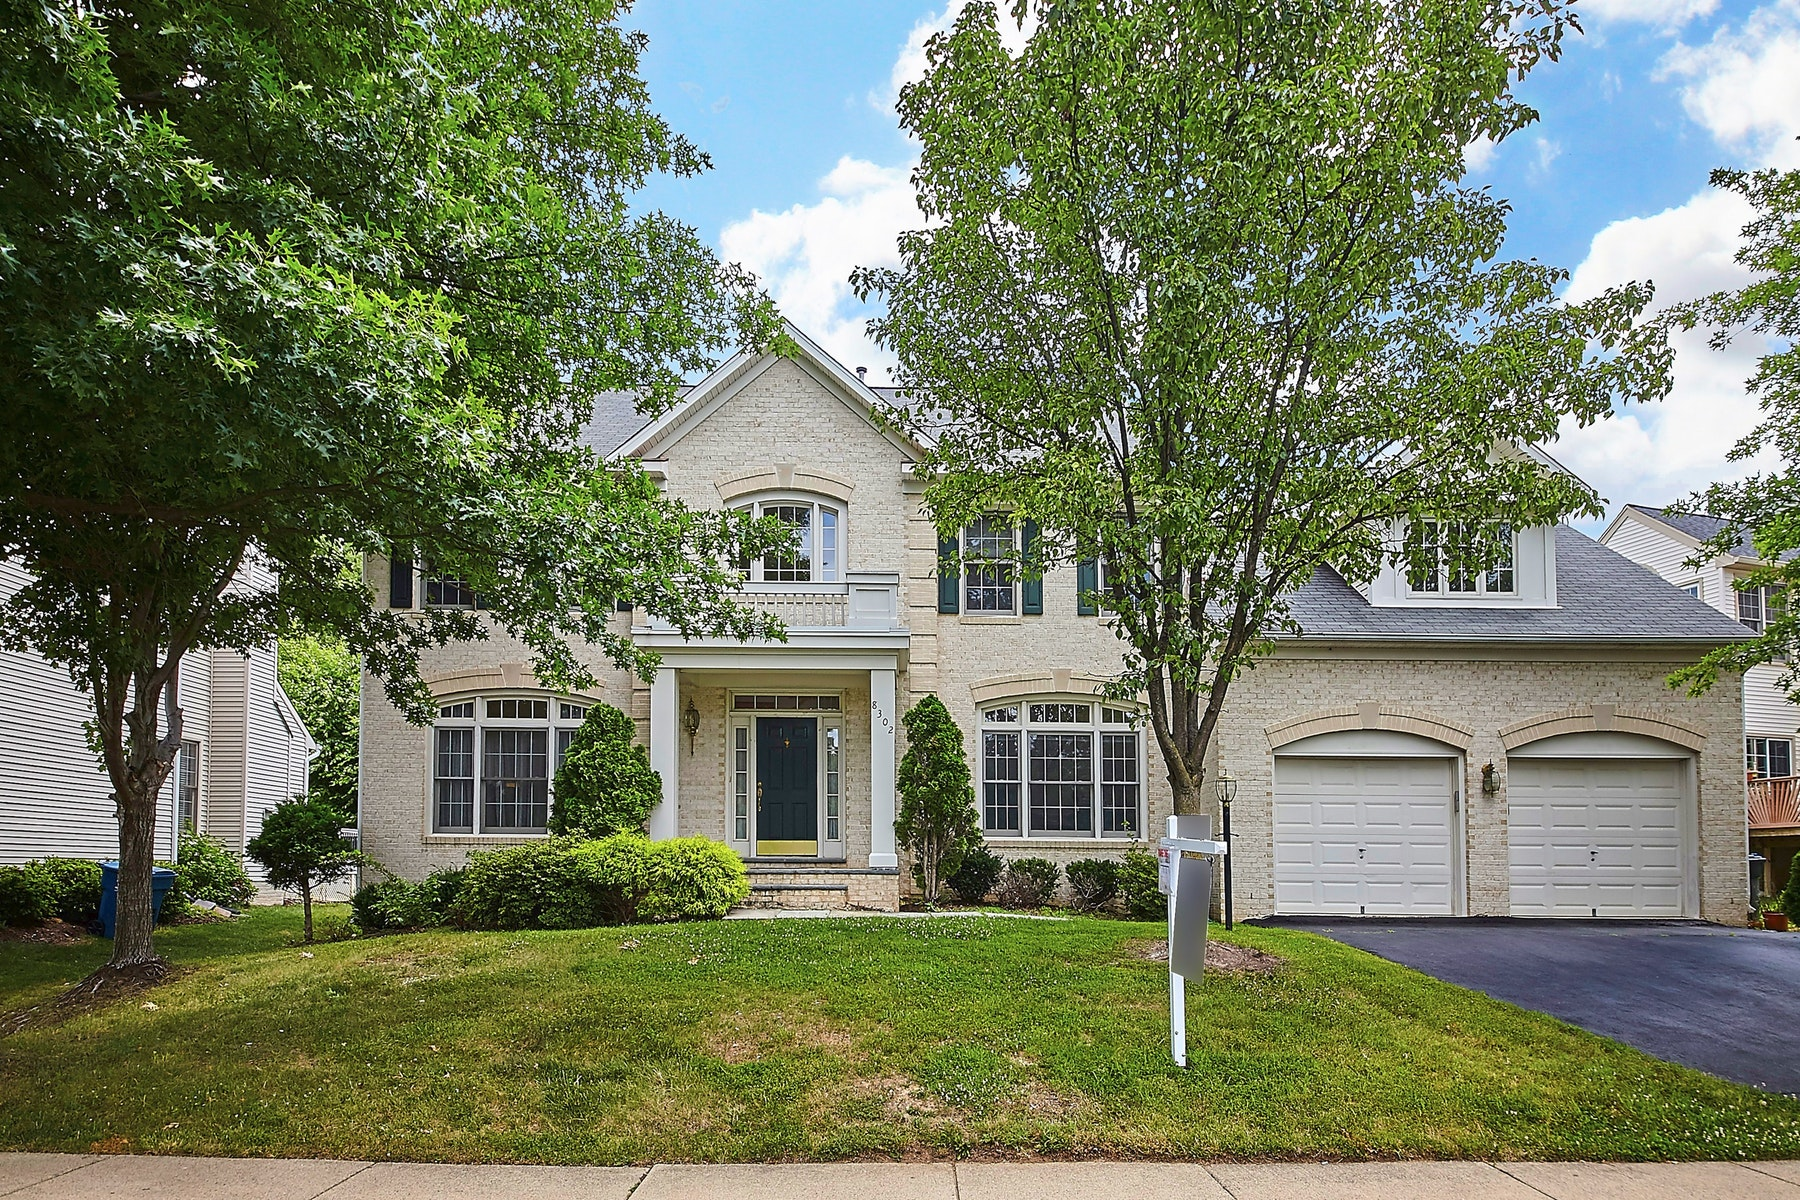 Single Family Home for Sale at Wolftrap 8302 Wolftrap Road Vienna, Virginia 22182 United States